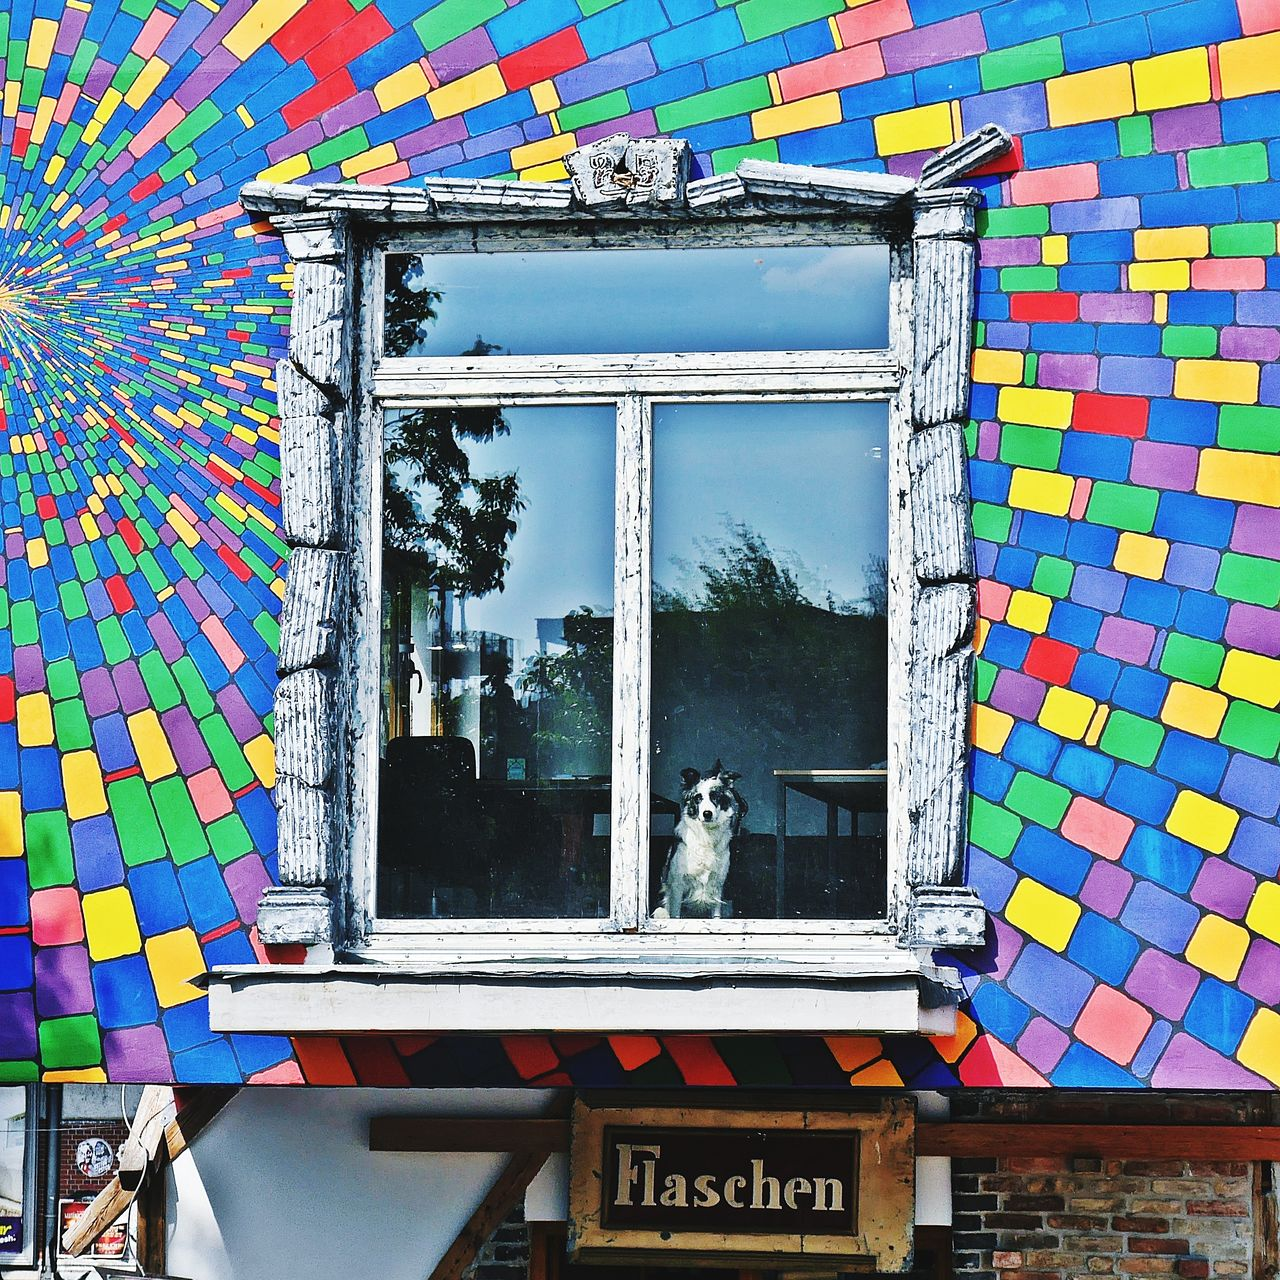 I need a room with a view 🎈Multi Colored Window Architecture EyeEmNewHere Inspirations Everywhere. Creativity Art Is Everywhere EyeEm Gallery Architecture_collection Inspirations Sidewalk Discoveries Streetphotography Cityscape Urban Lifestyle Berliner Ansichten Berlinlove Berlin Sidewalk Photograhy Views From The Sidewalk Kreuzberg Facadelovers Window Box View From Below Windows_aroundtheworld Look Through The Window